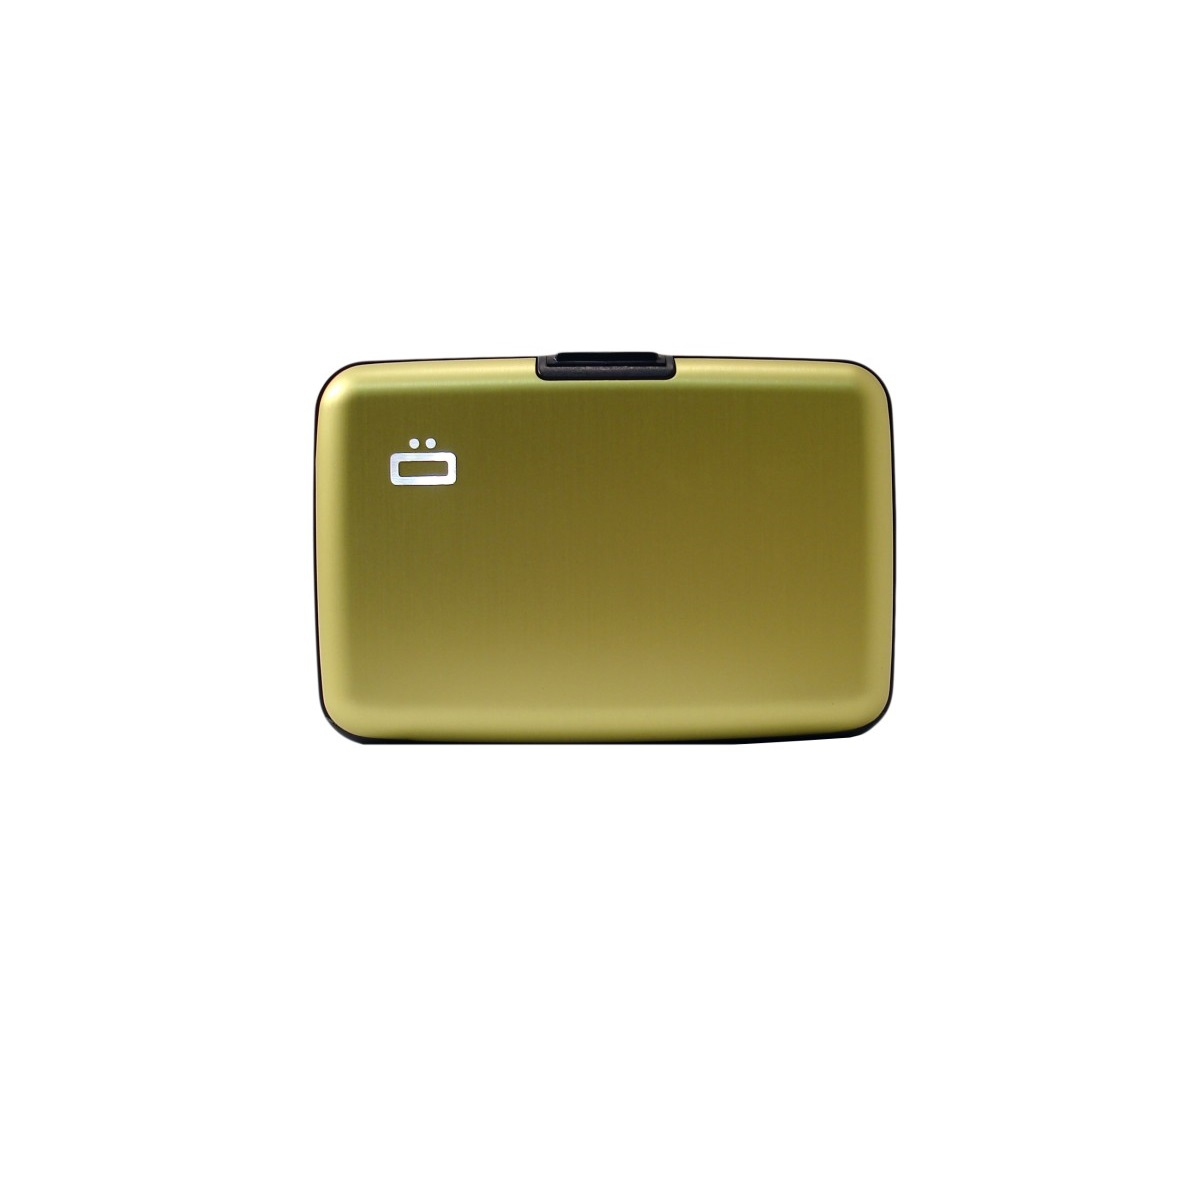 OGON Aluminum Wallet - Green Lime